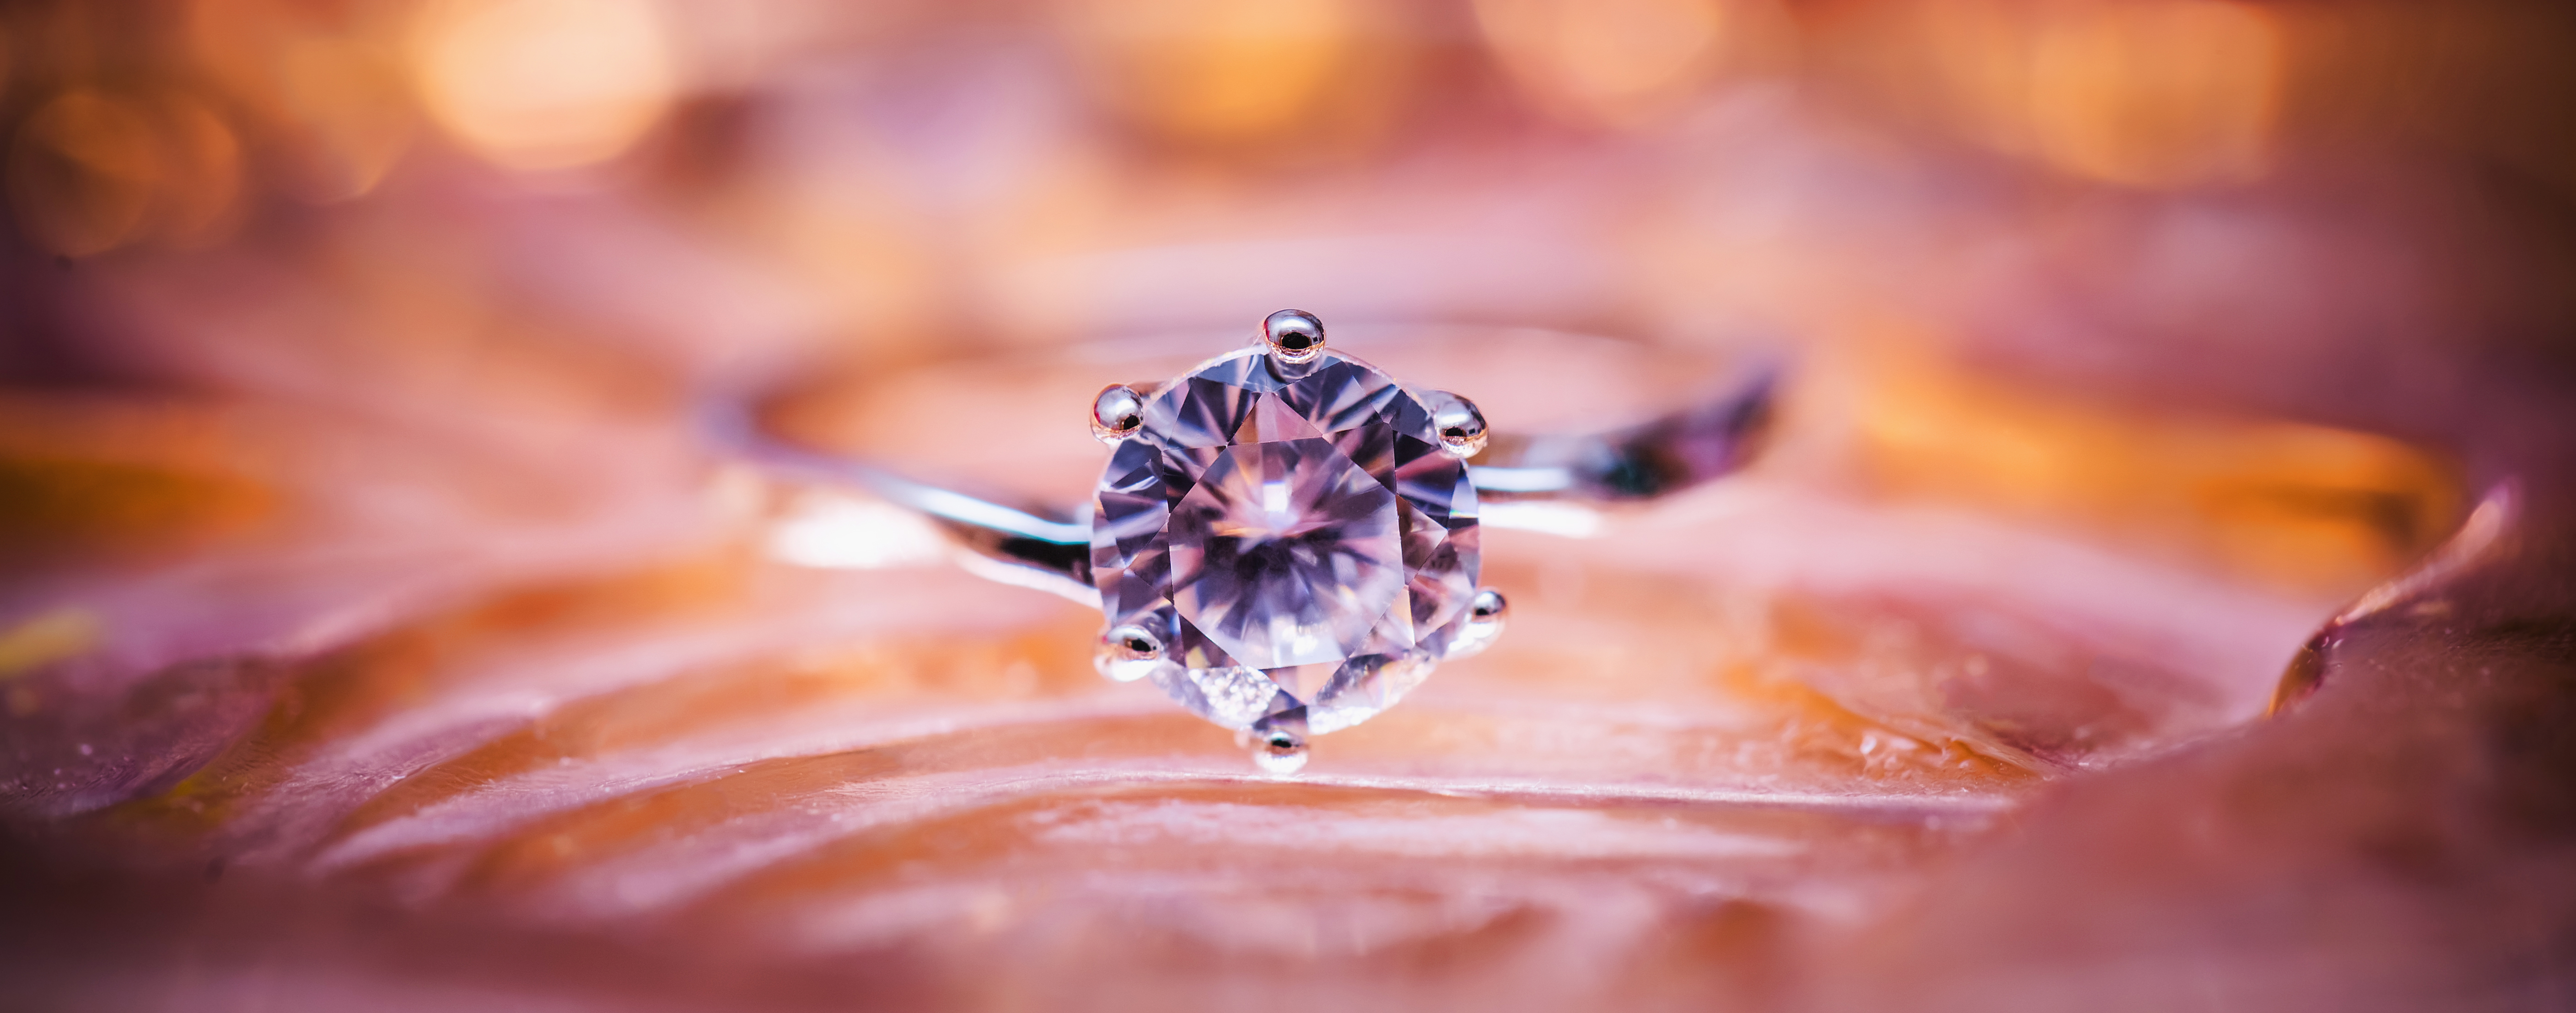 Close Up Photo of Gray and Diamond Ring